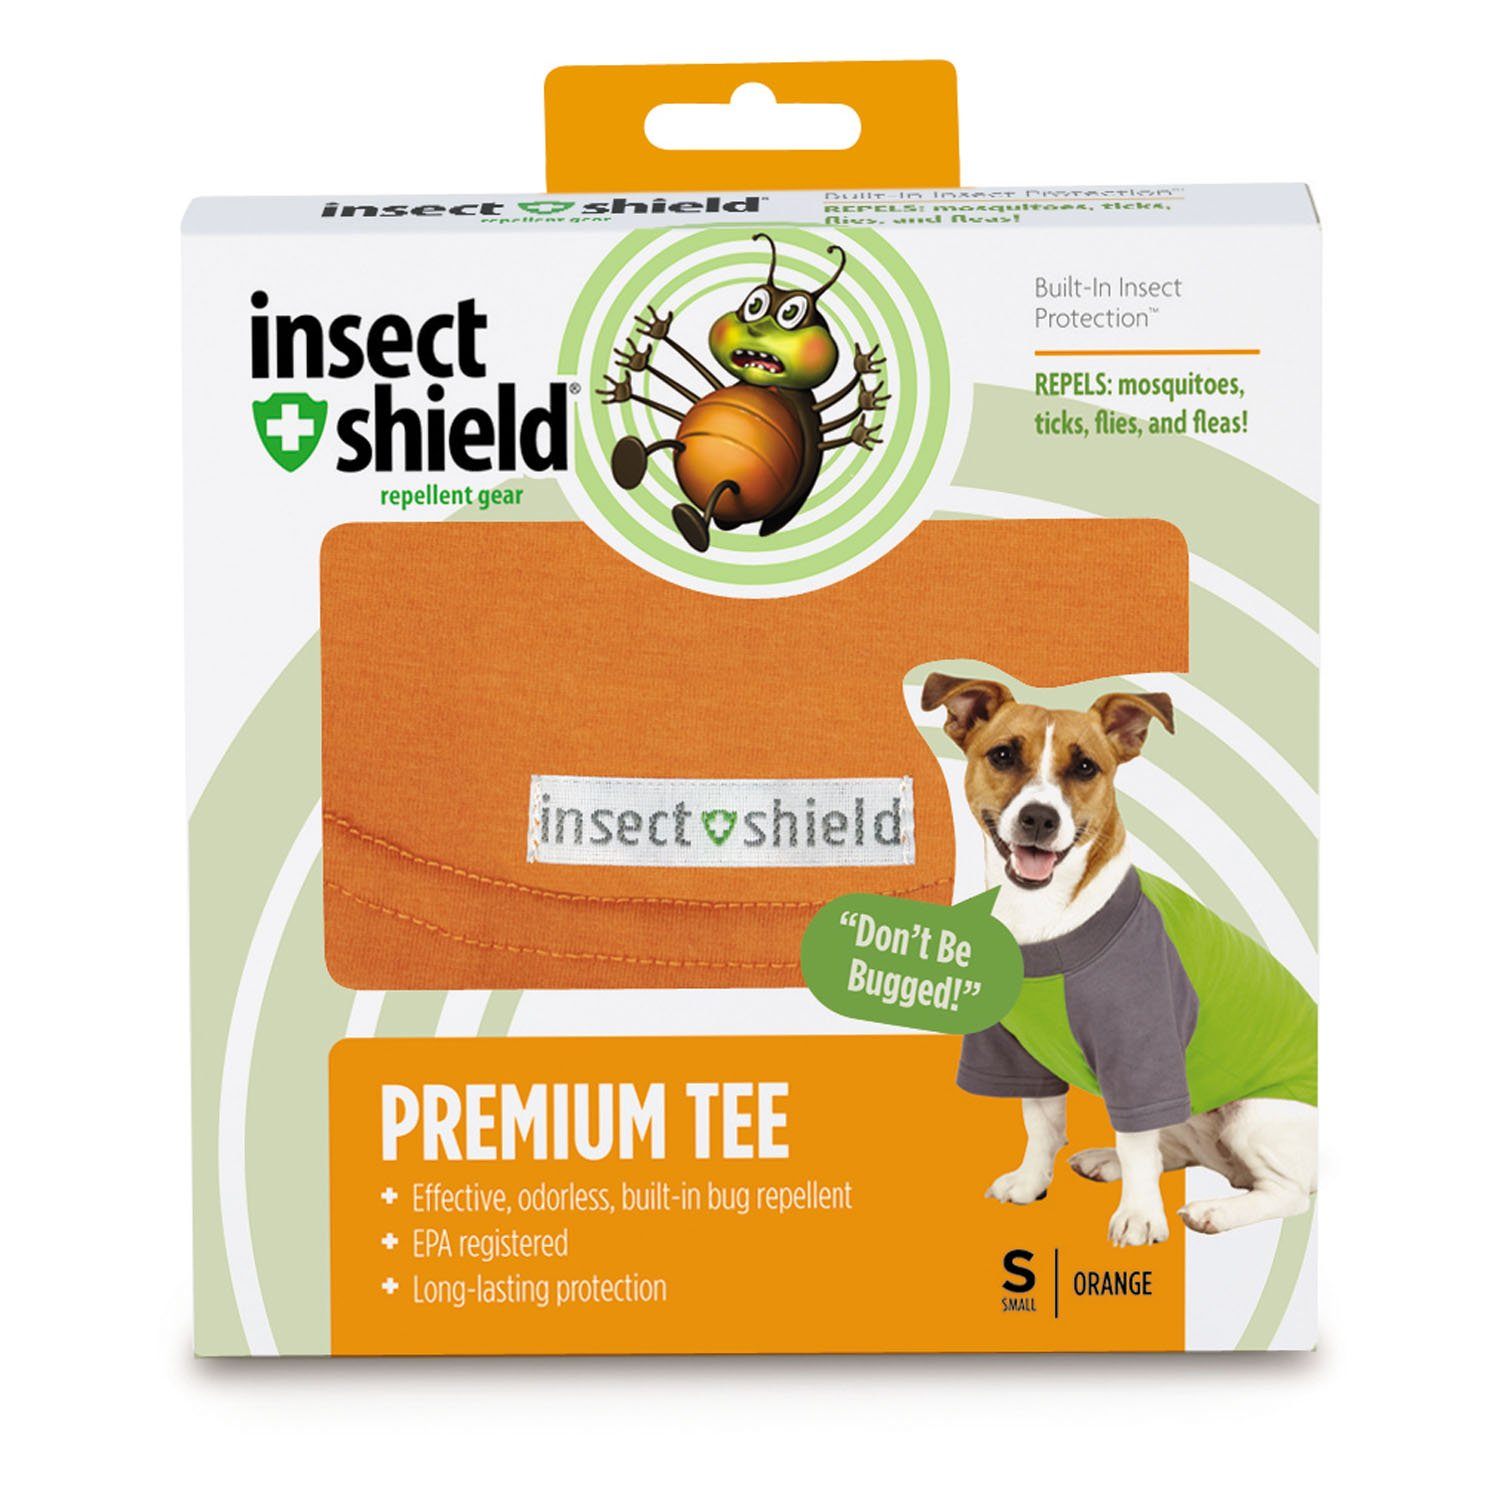 Amazon.com : Insect Shield Insect Repellant Premium T-Shirt for Protecting Dogs from Fleas, Ticks, Mosquitoes & More : Pet Supplies